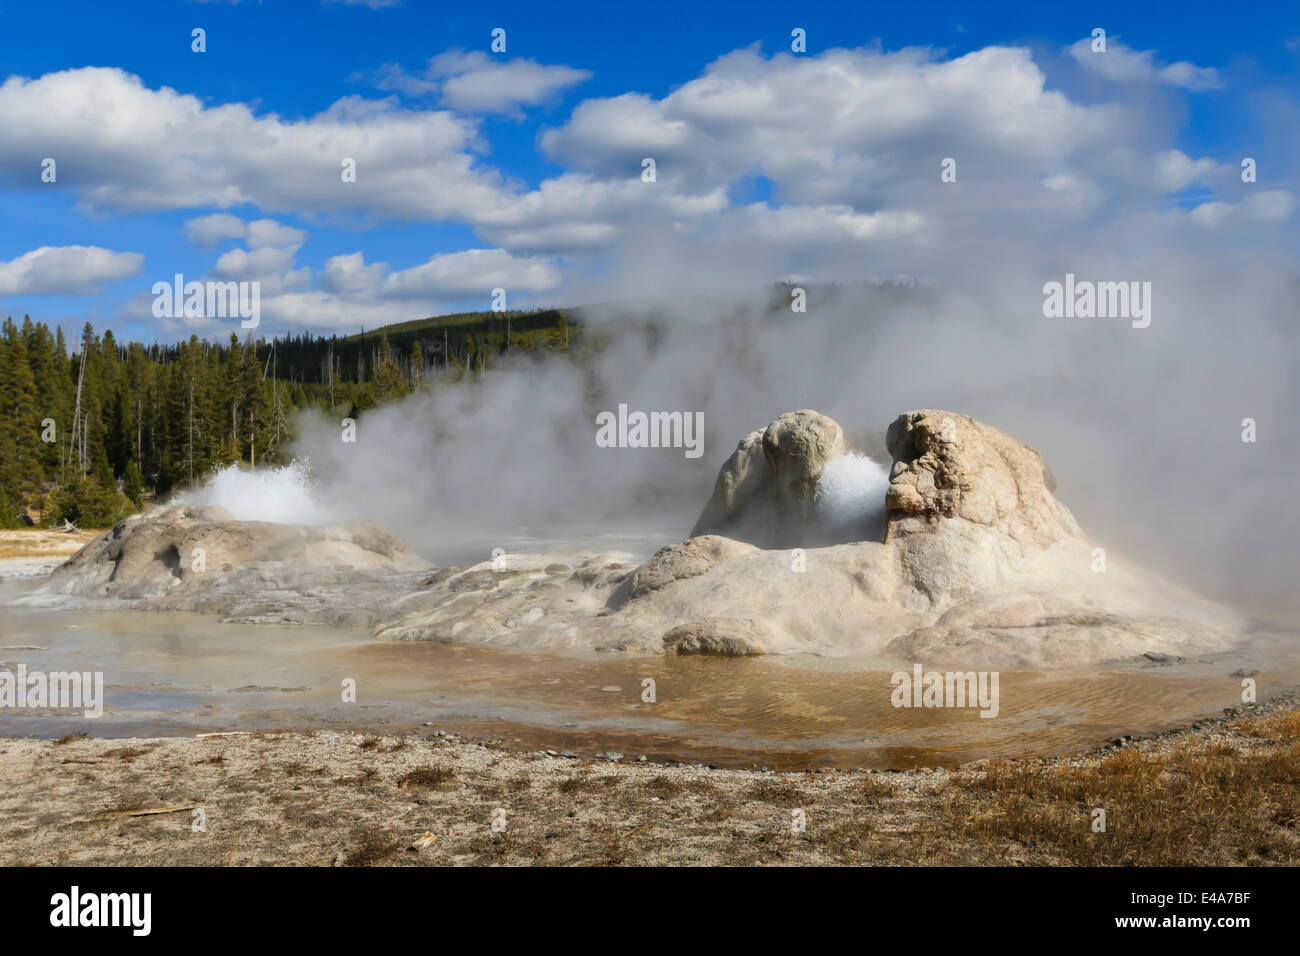 Rocket and Grotto cone geysers erupt, Upper Geyser Basin, Yellowstone National Park, UNESCO, Wyoming, USA - Stock Image